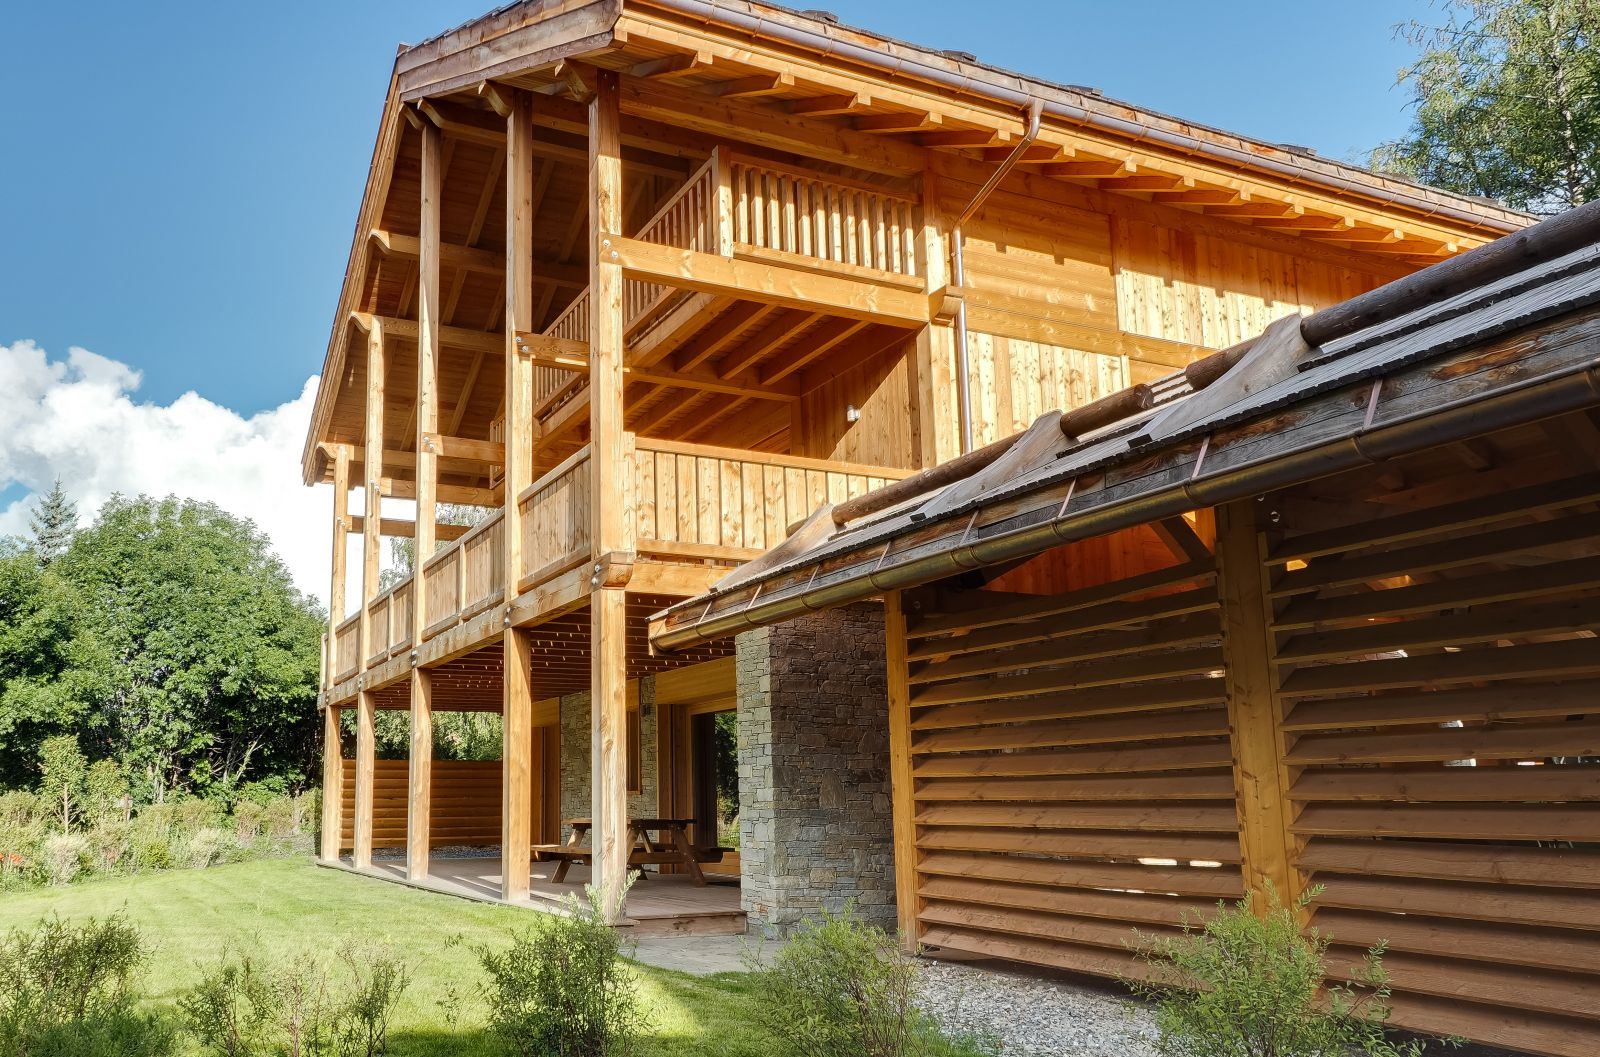 15/Chalet Sirius/chalet-Syrius-monetier-les-bains.jpg